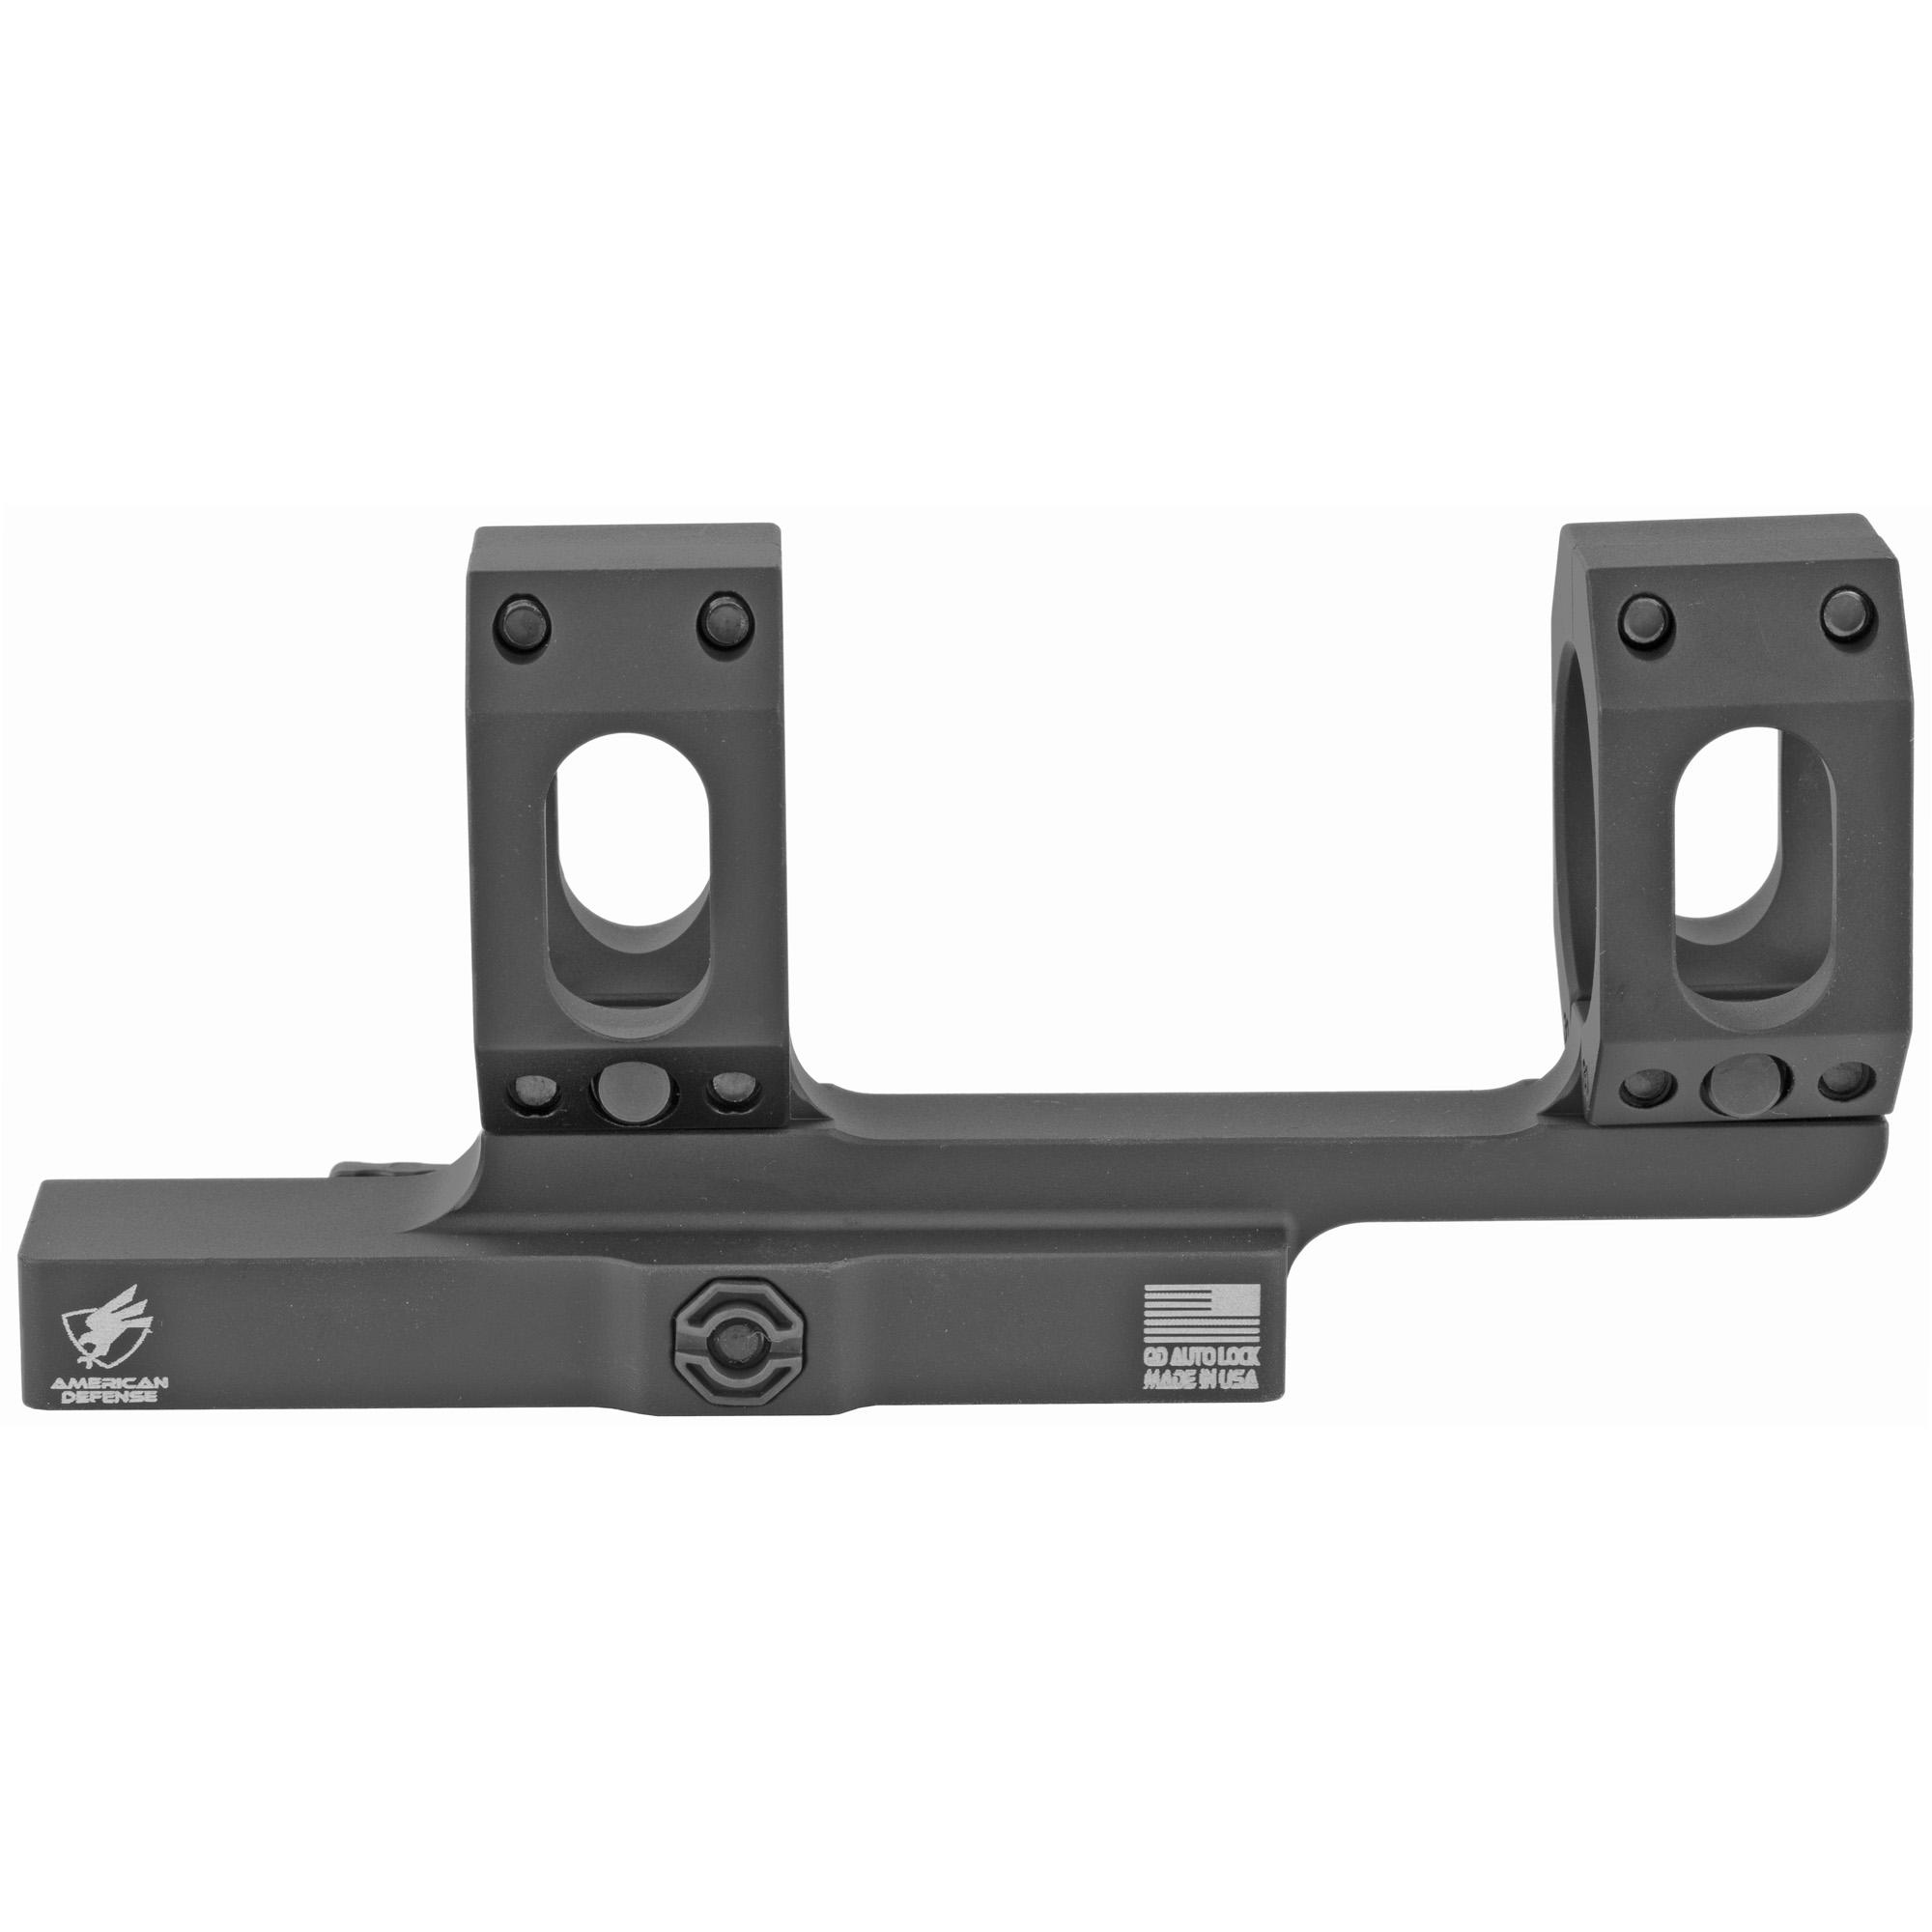 American Defense Mfg. American Defense Mfg. Strght Mount 30mm Single Quick Release Ti